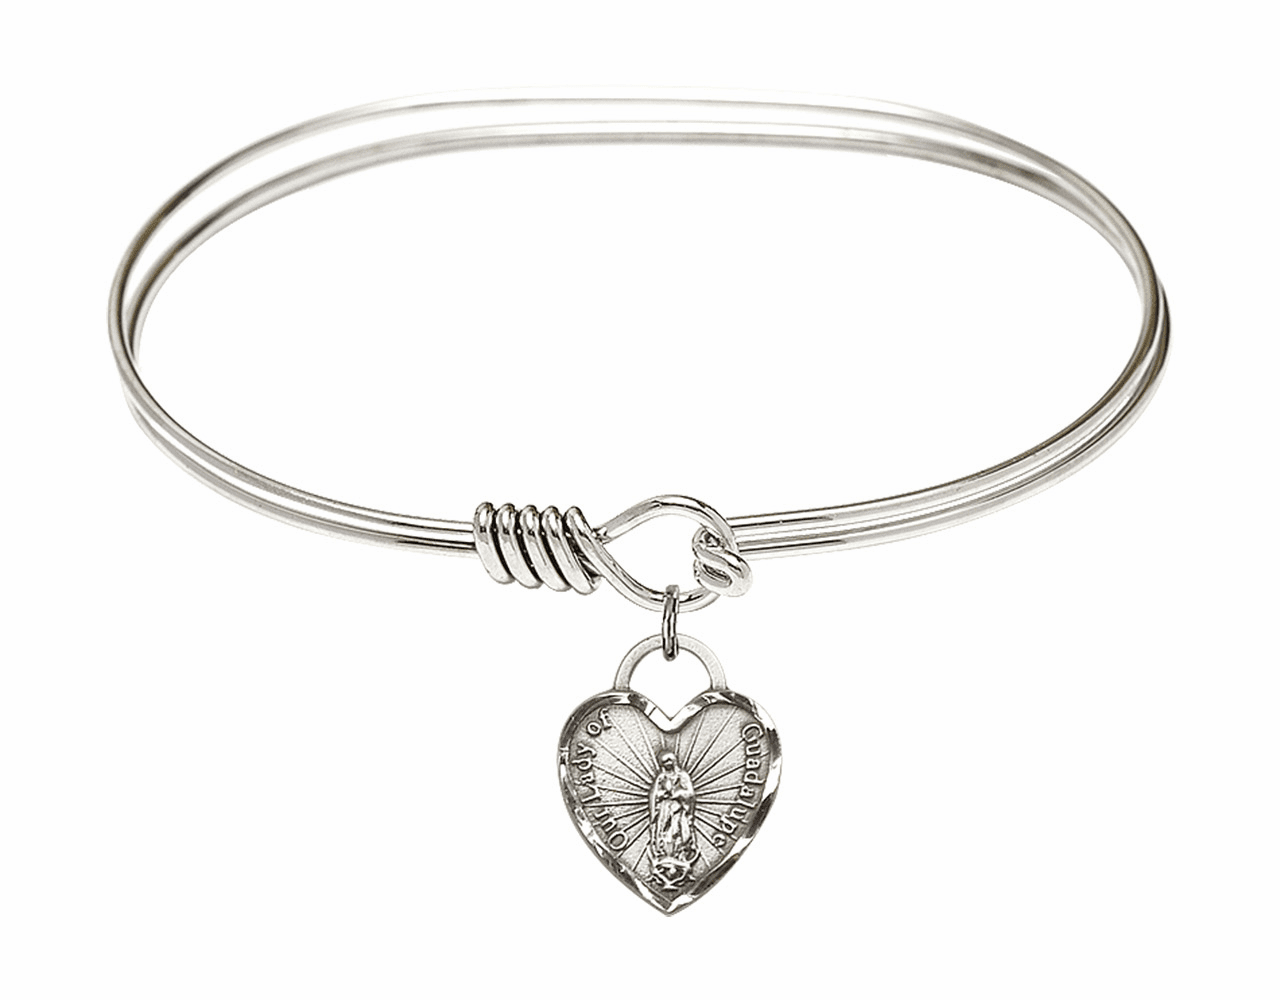 Round Eye Hook Bangle Bracelet w/Our Lady of Guadalupe Heart Sterling Silver Charm by Bliss Mfg